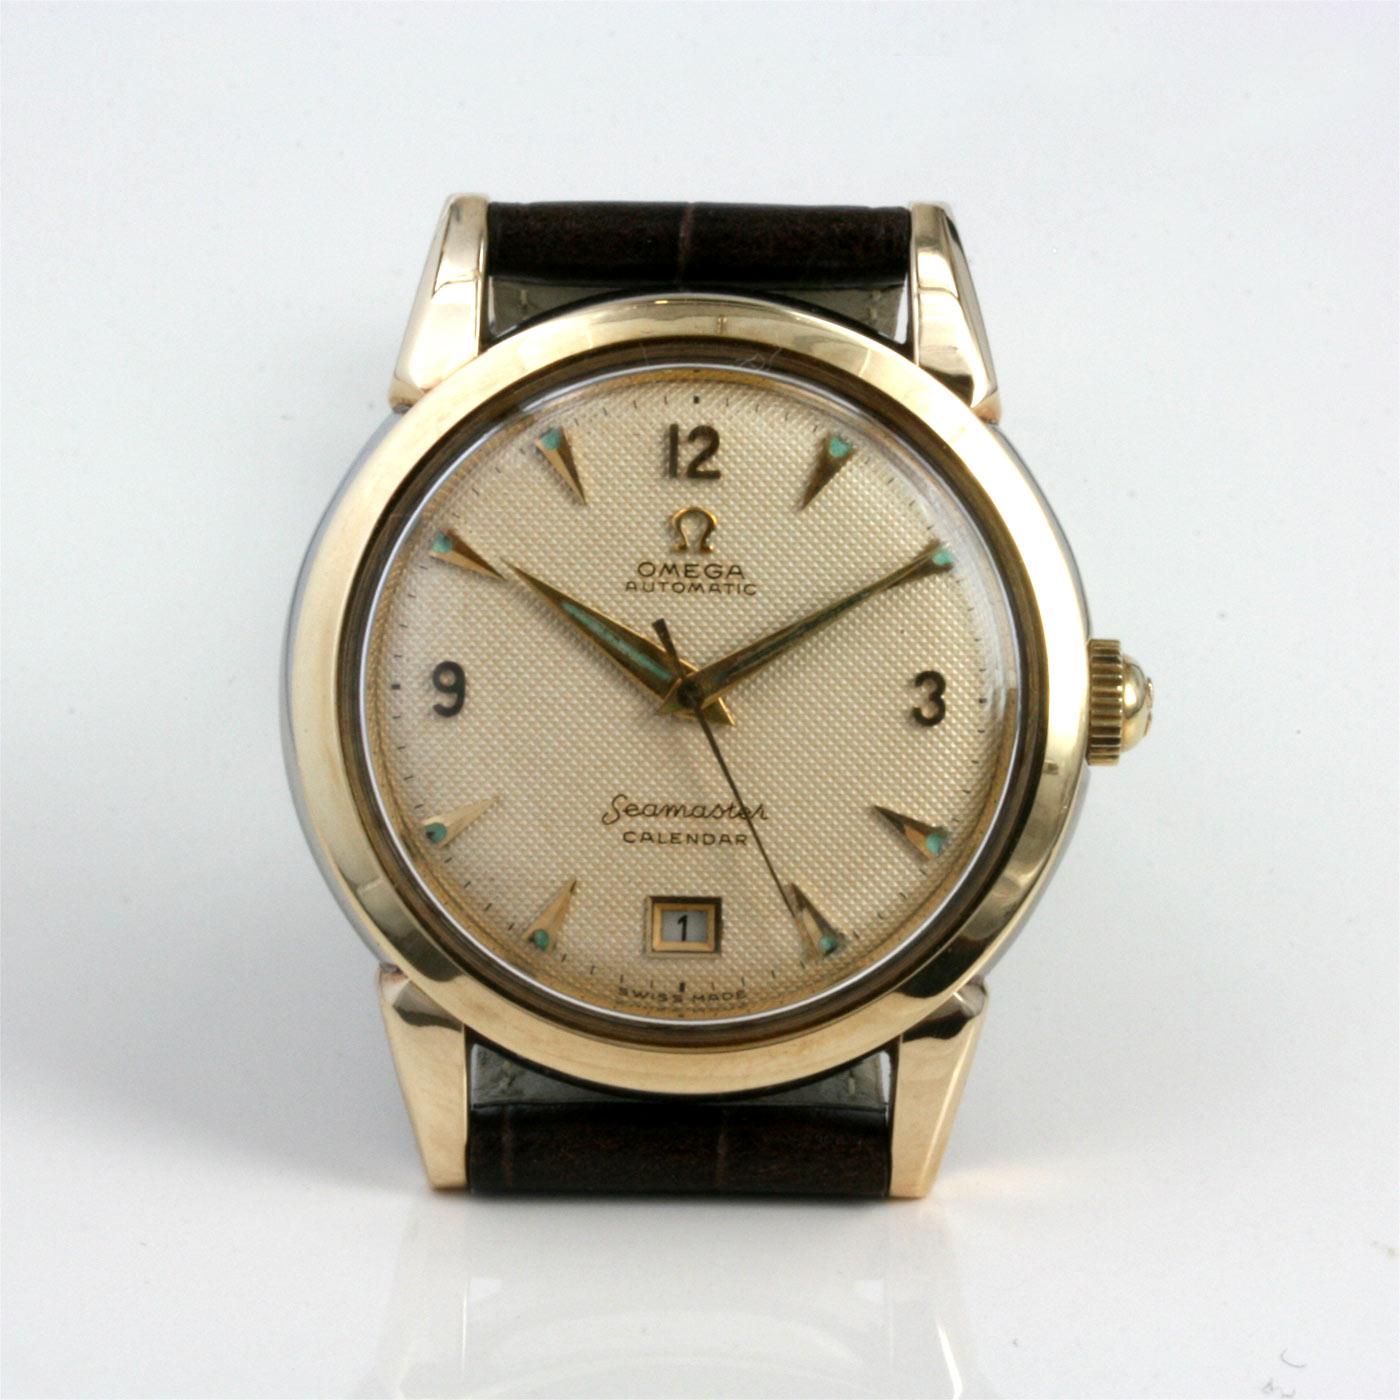 Buy 1952 vintage omega calendar watch sold items sold omega watches sydney kalmarantiques for Calendar watches